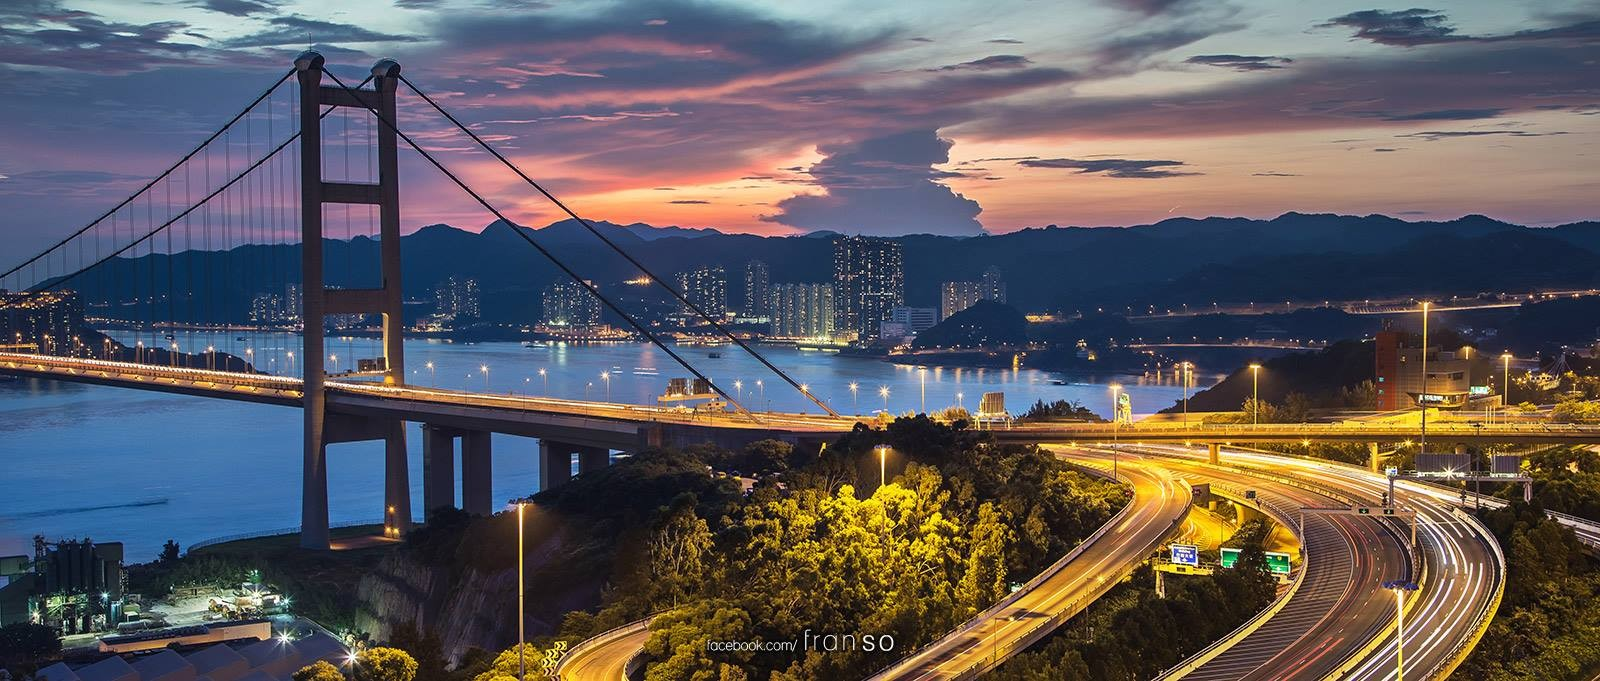 Cityscape | Hong Kong | Tsing Ma Bridge  | Before typhoon